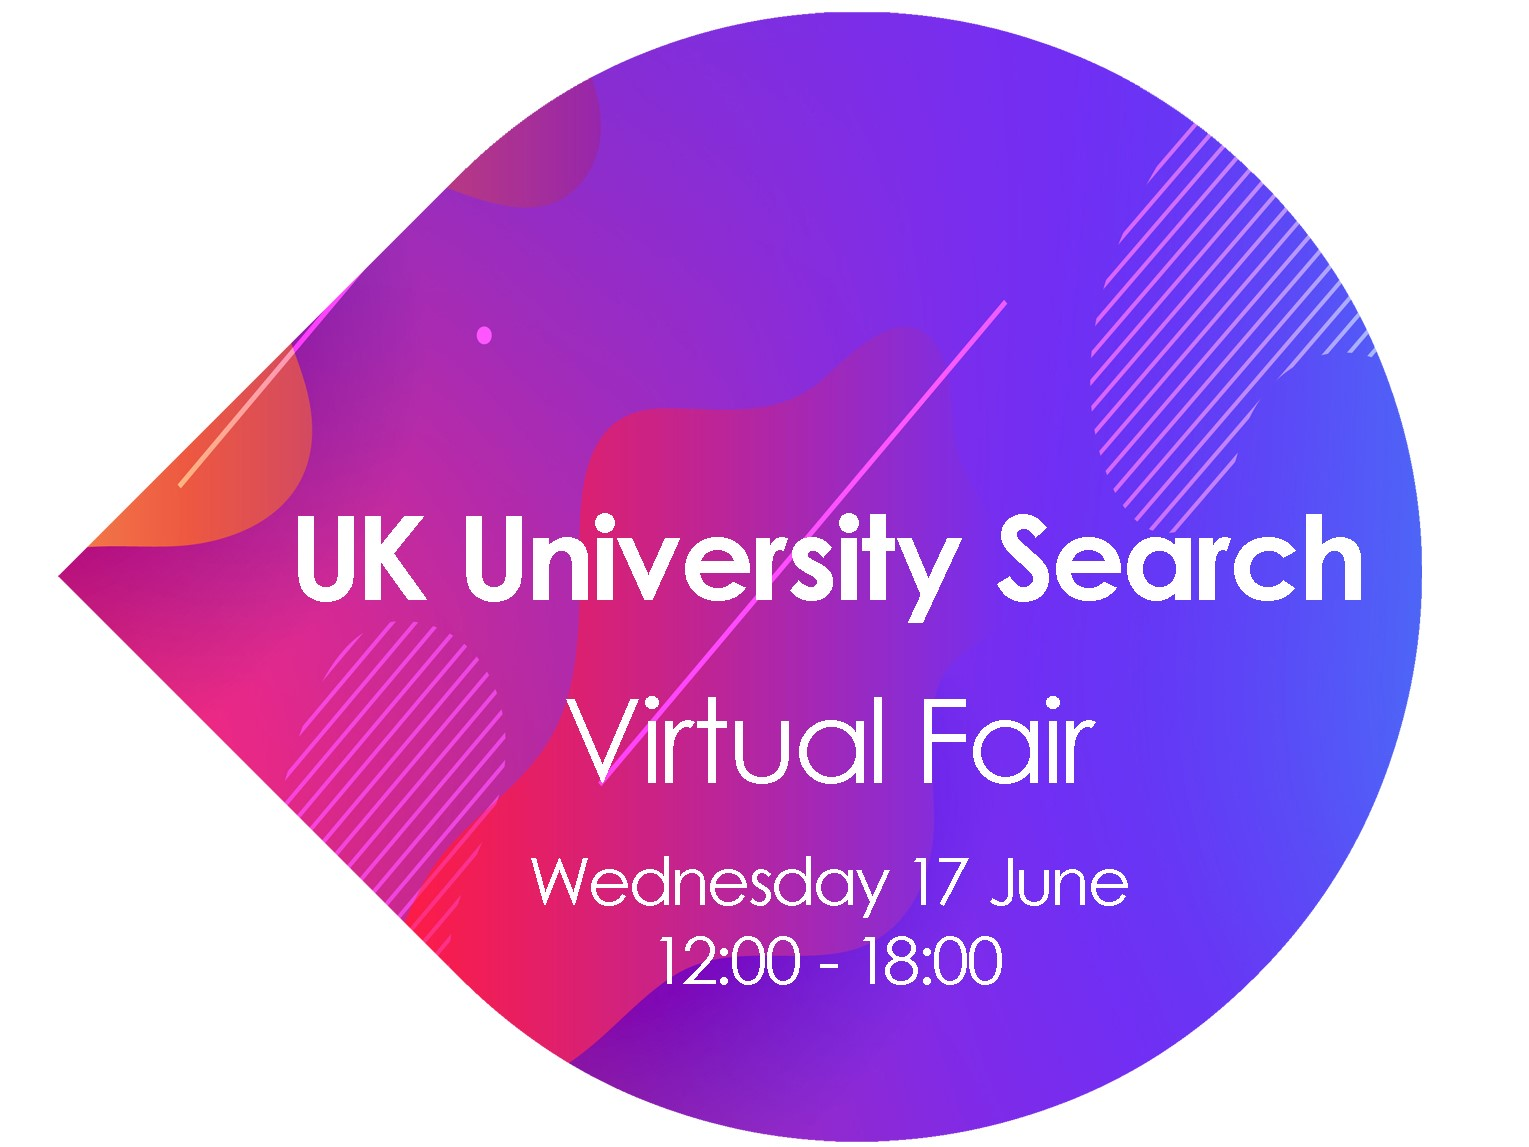 Press Release: UK University Search Virtual Fair